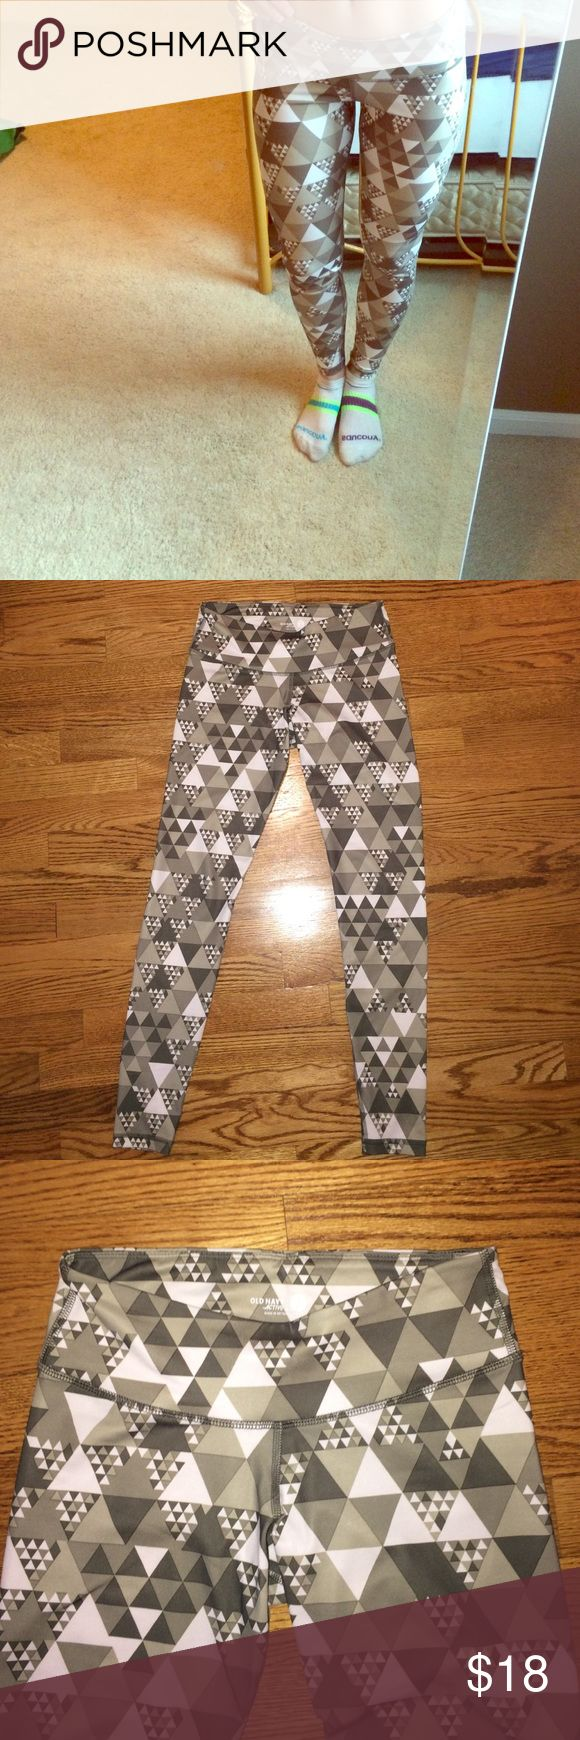 Old Navy Active Print Legging BRAND NEW Old Navy Active workout Legging. Never worn except to take this picture to list in my Poshmark closet! Perfect condition. Great workout Legging with trendy dark gray, light gray, and white print. Hidden pocket in the back waistband for keys, hair ties, phone etc. Old Navy Pants Leggings